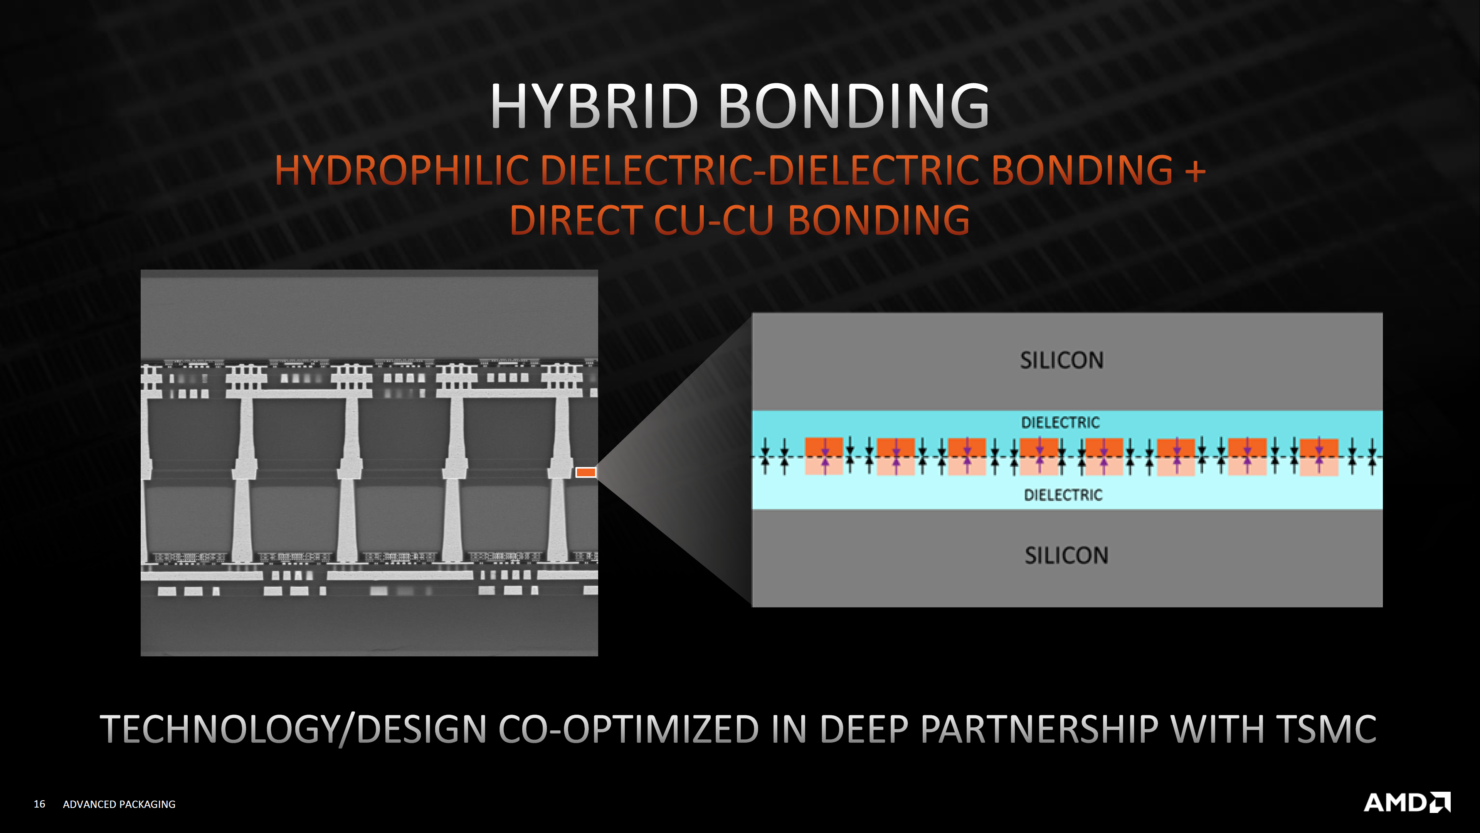 amd-advanced-3d-chiplet-packaging-3d-stacking-technologies-3d-v-cache-_15